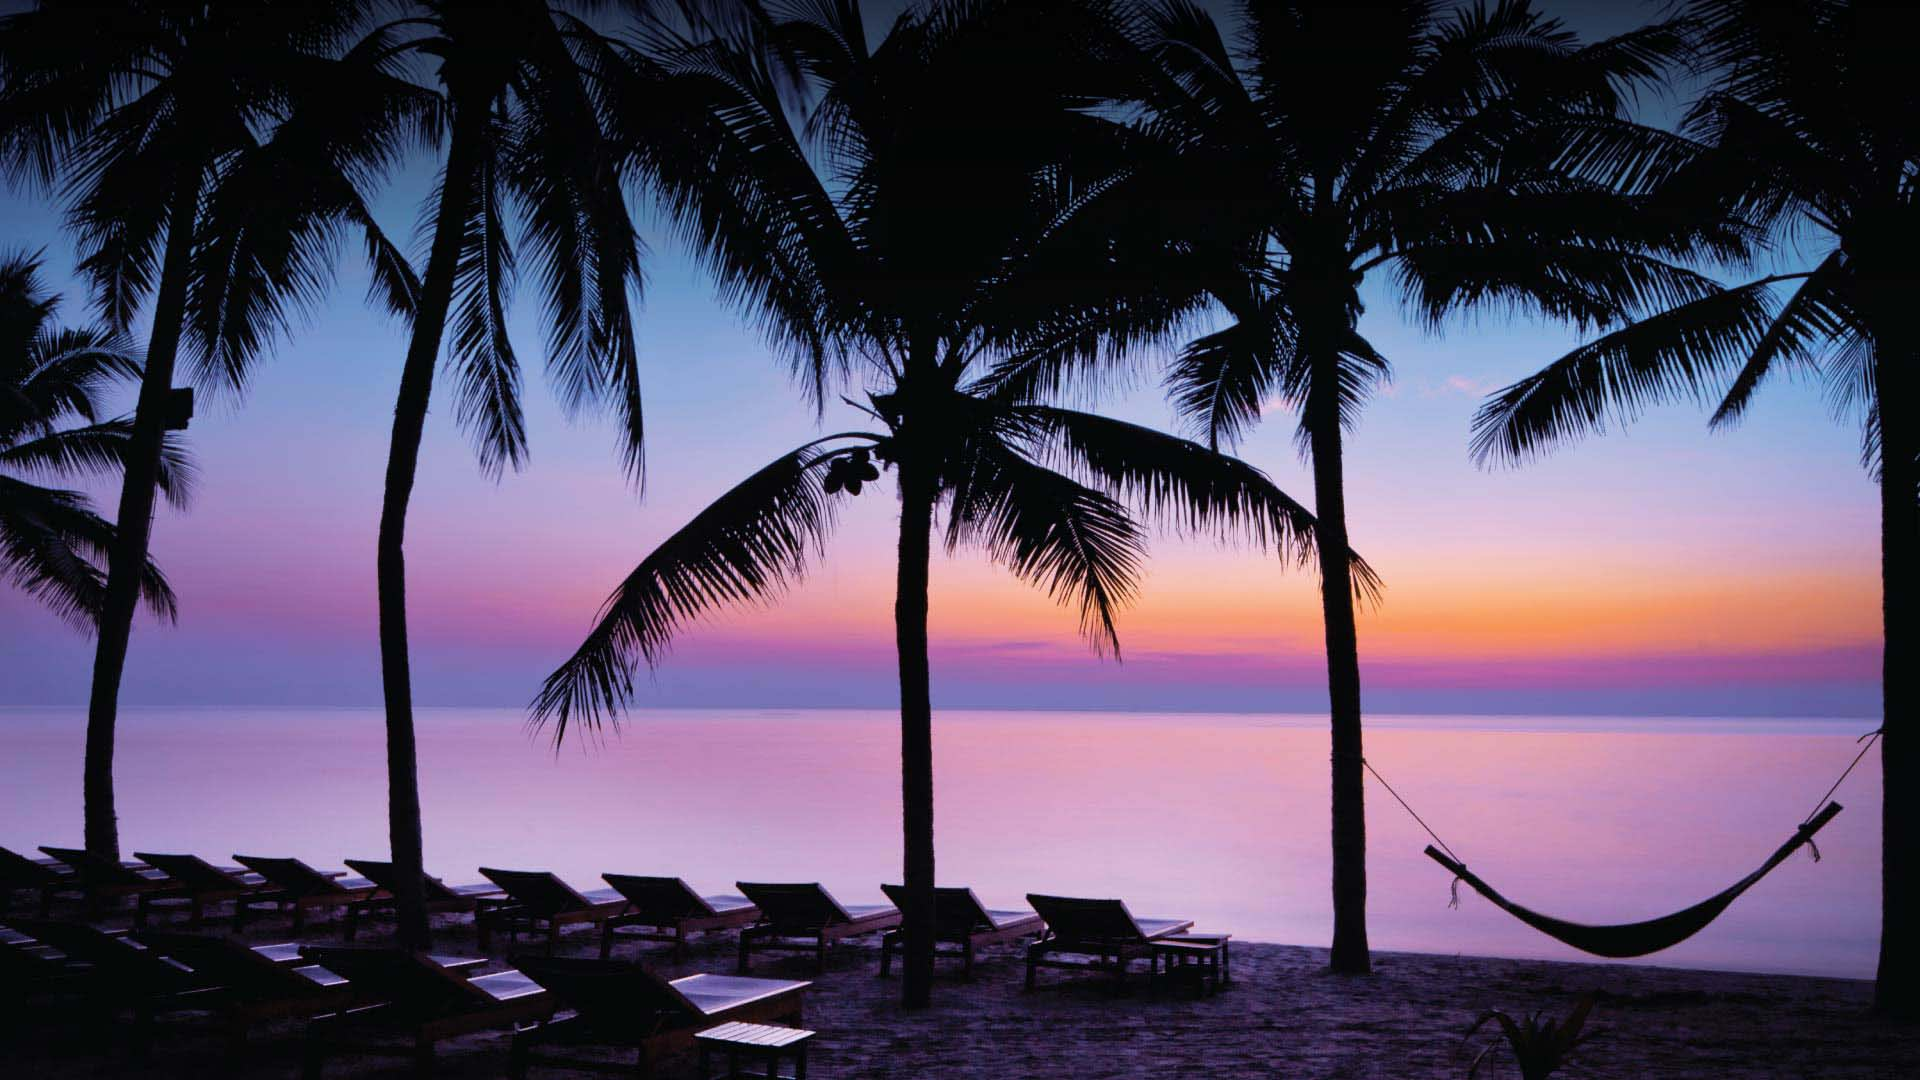 https://assets.anantara.com/image/upload/q_auto,f_auto/media/minor/anantara/images/anantara-hua-hin-resort/the-resort/desktop-banner/anantara_hua_hin_beach_sunset_header_1920x1080.jpg